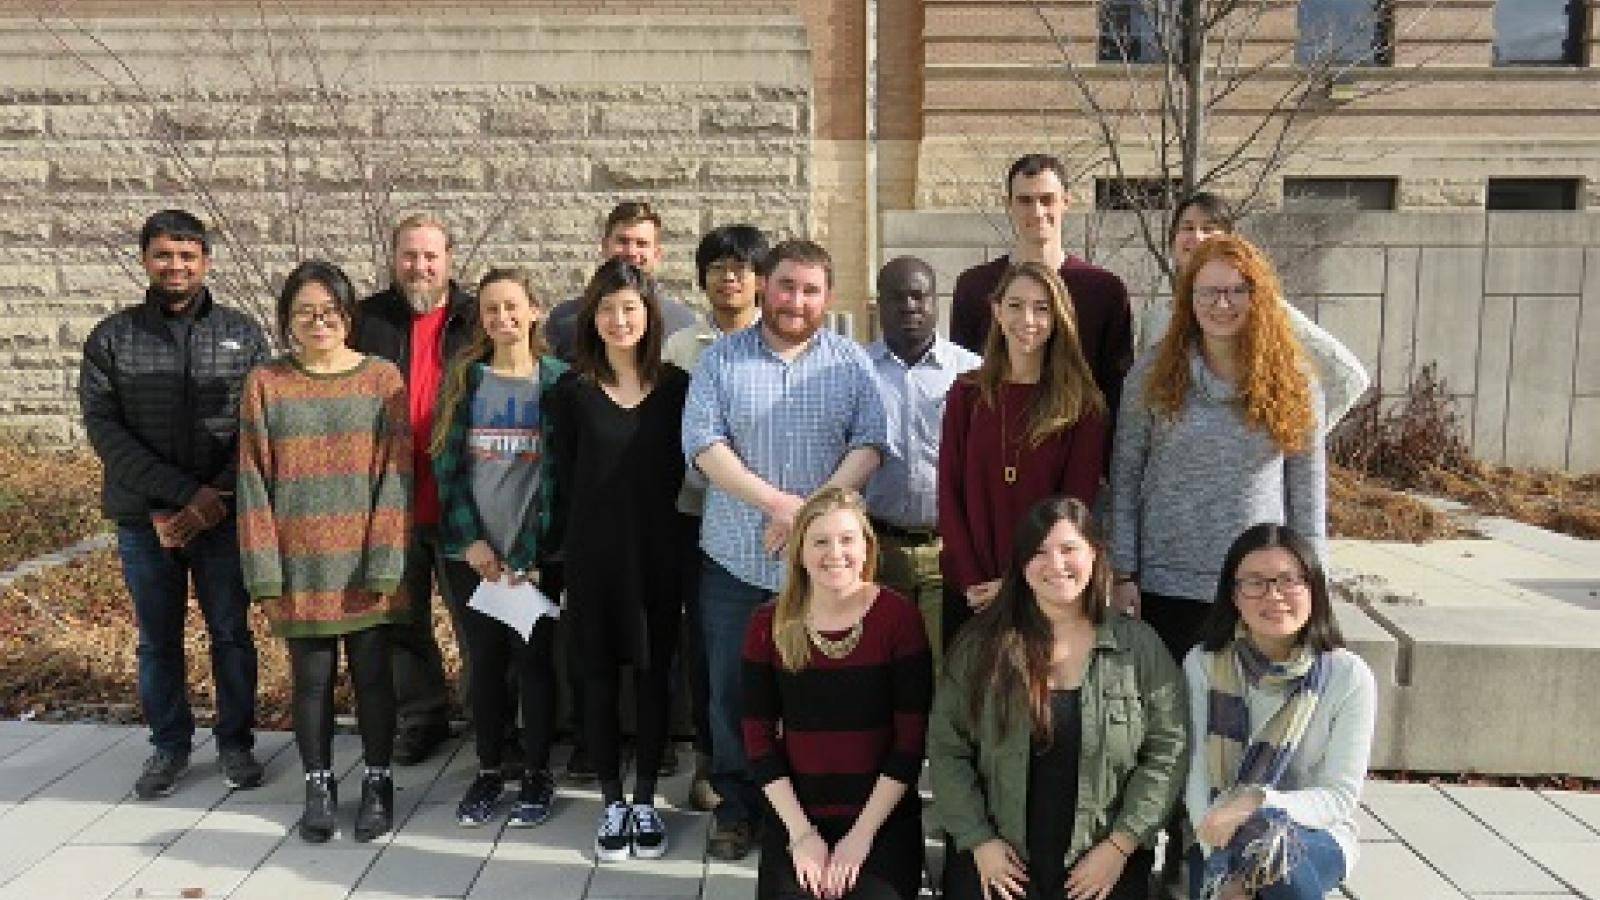 Members of the CCBBI Student Group gather for a photo after their Users Workshop.